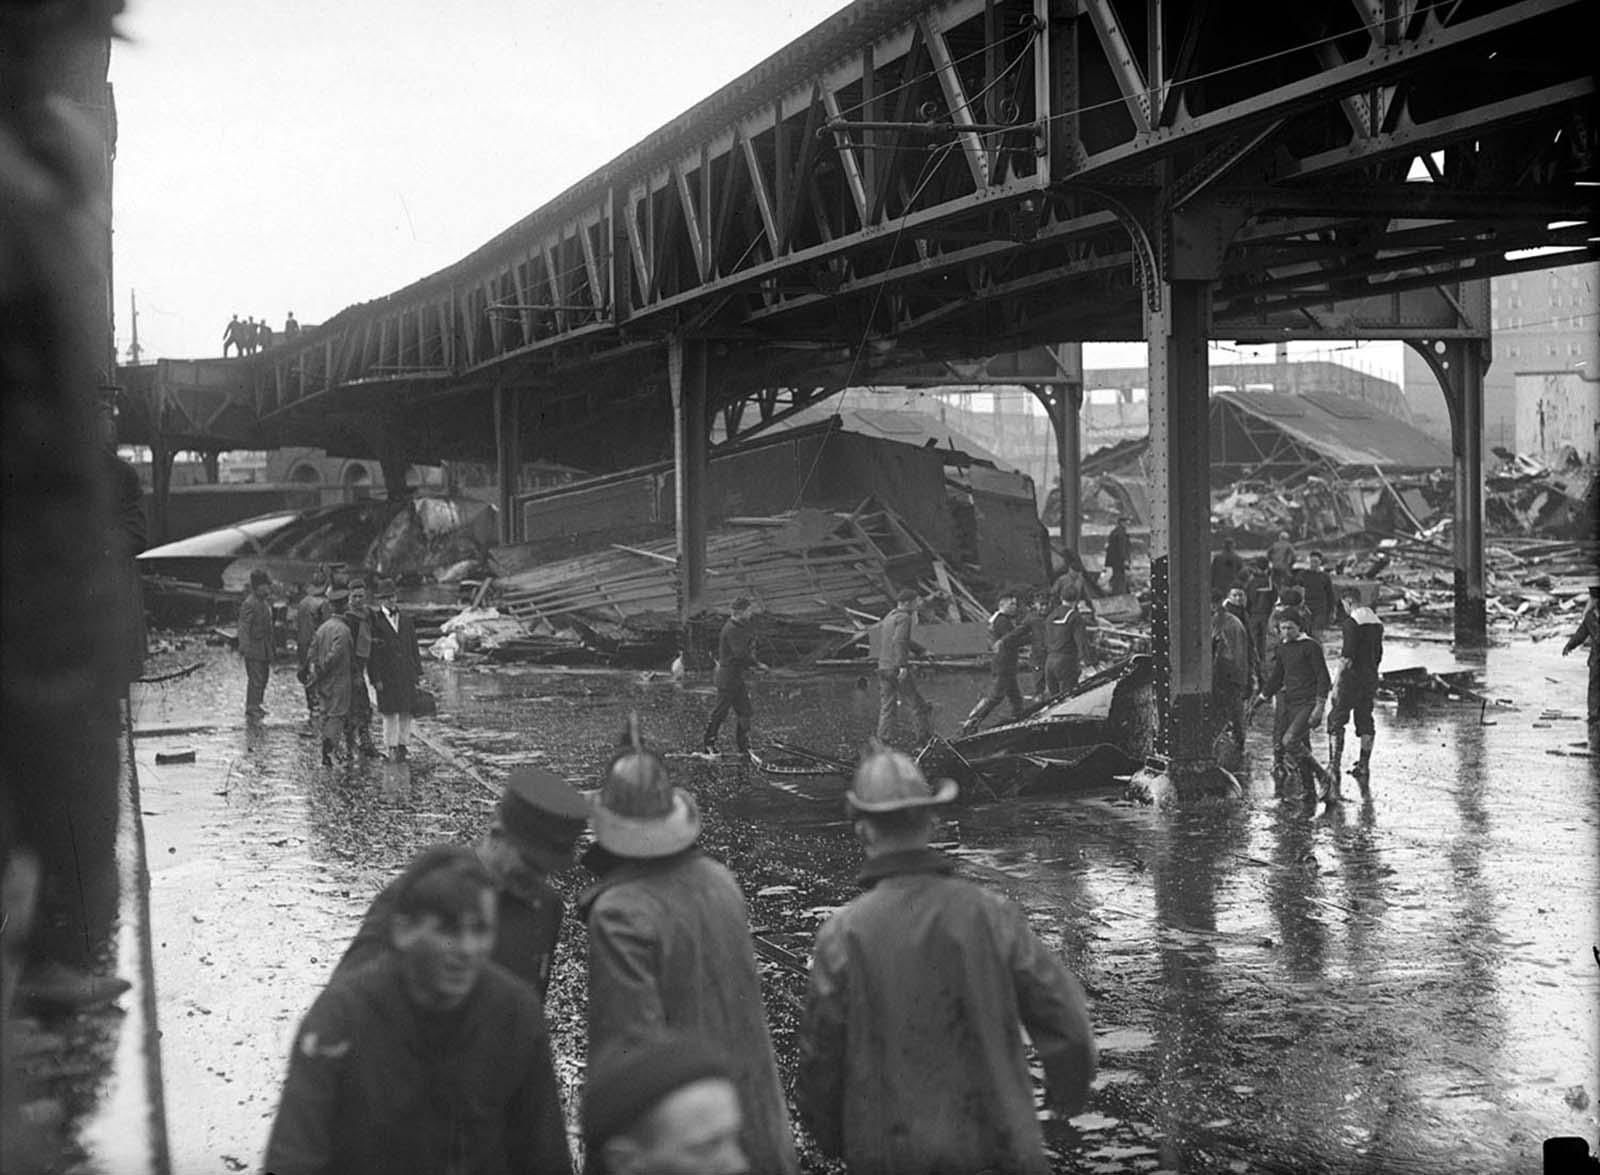 Firefighters and others stand in a pool of molasses after the explosion of a molasses storage tank owned by the United States Industrial Alcohol Company in Boston on January 15, 1919. About 2.3 million gallons of molasses flooded the area, killing 21 people, injuring 150, trapping a dozen horses, and destroying buildings, homes and part of the elevated train.